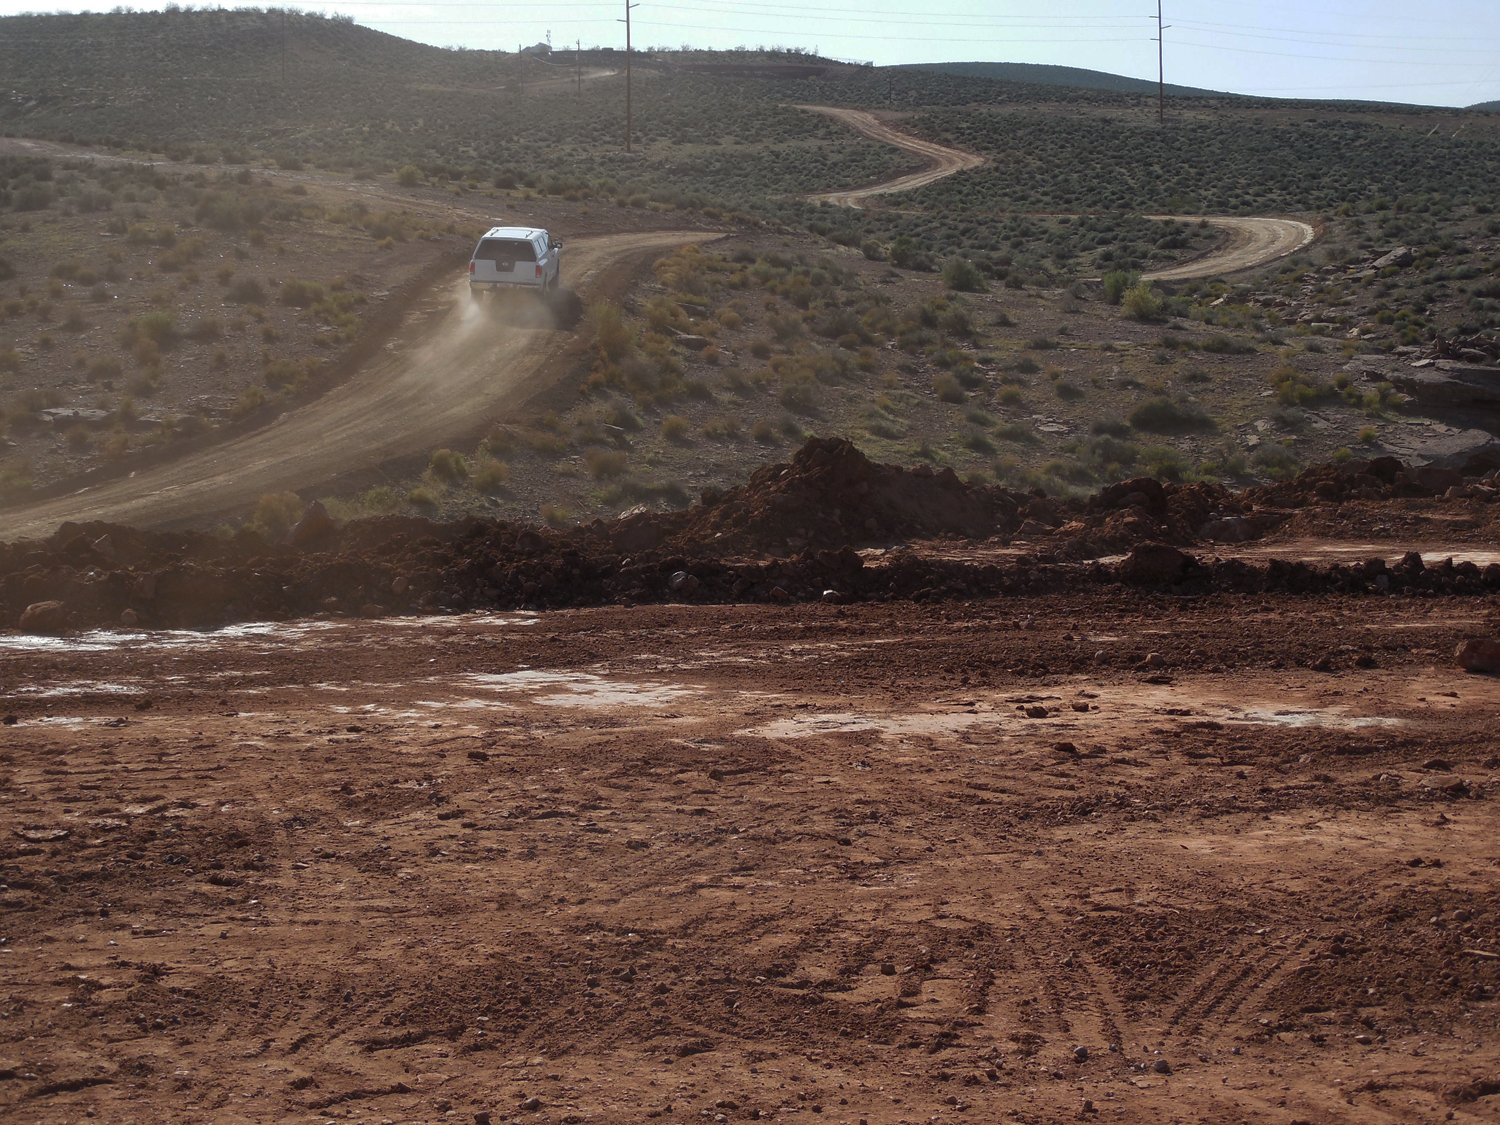 A new outdoor park located between the water tank and Cove Wash Trail in Santa Clara is in the planning stages and could host mountain bike races, Santa Clara, Utah, March 16, 2016   Photo by Julie Applegate, St. George News